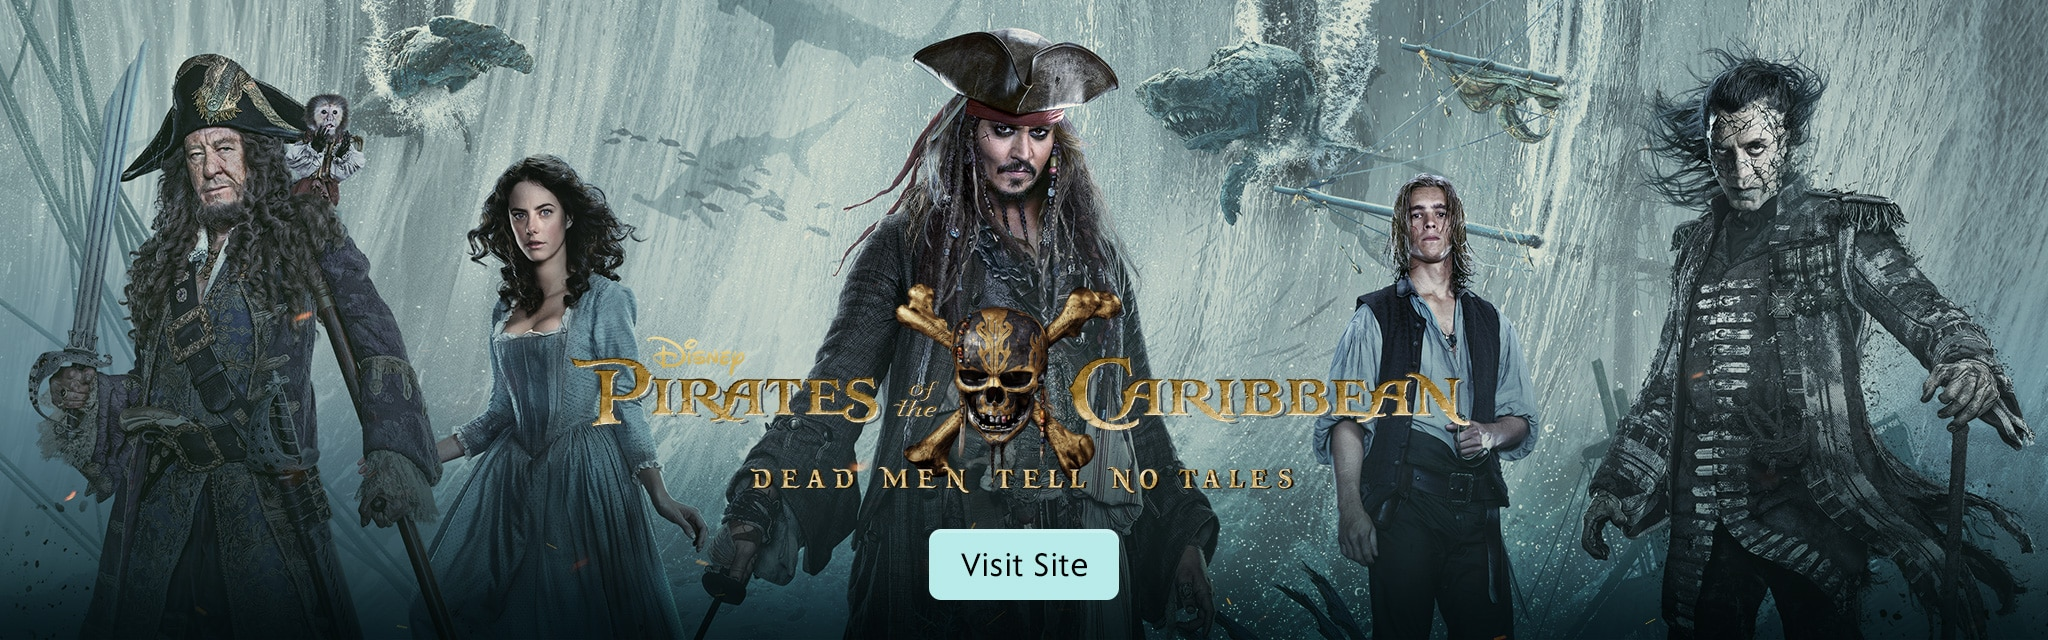 pirates of the caribbean movies